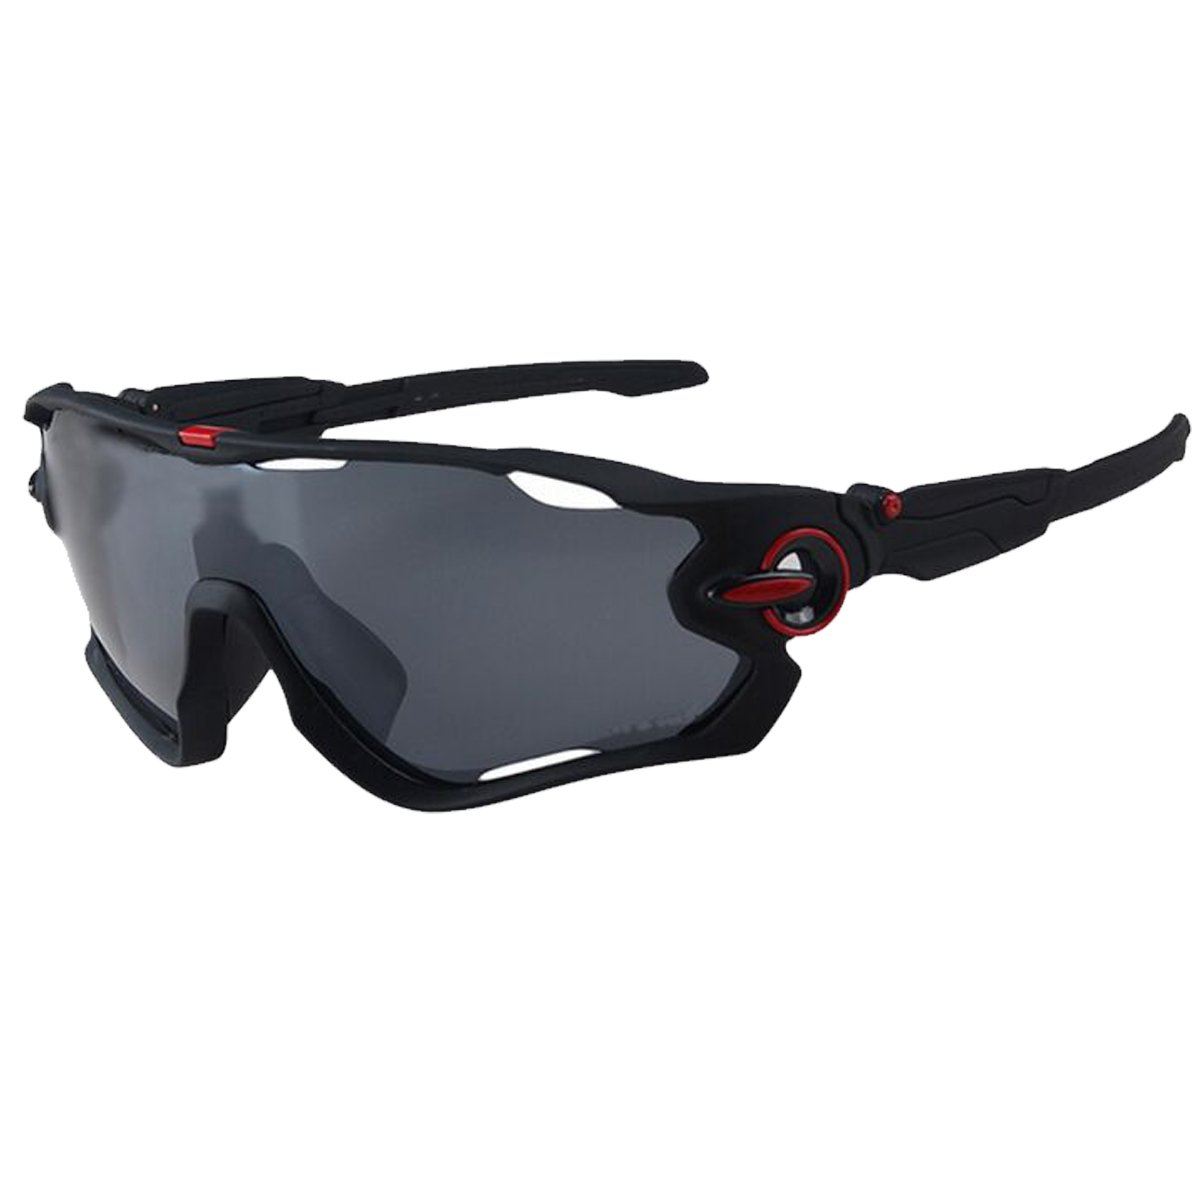 Polarized Sports Sunglasses with Interchangeable Lenses, TR90 Unbreakable Frame for Running